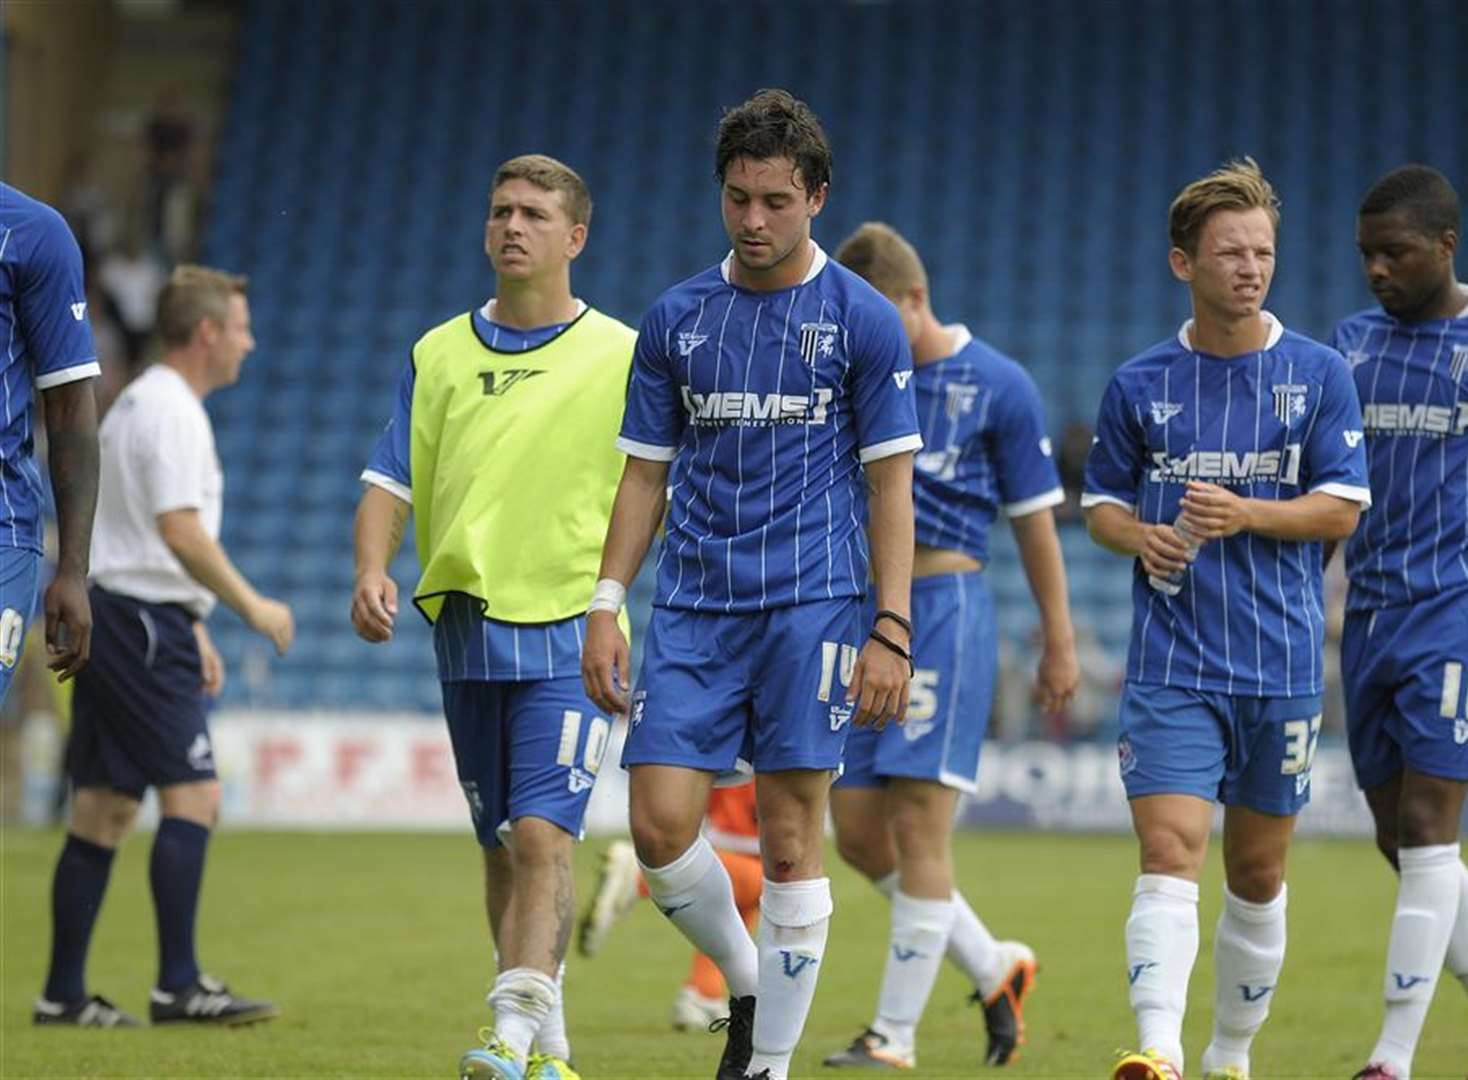 Gills still on the look-out for new faces